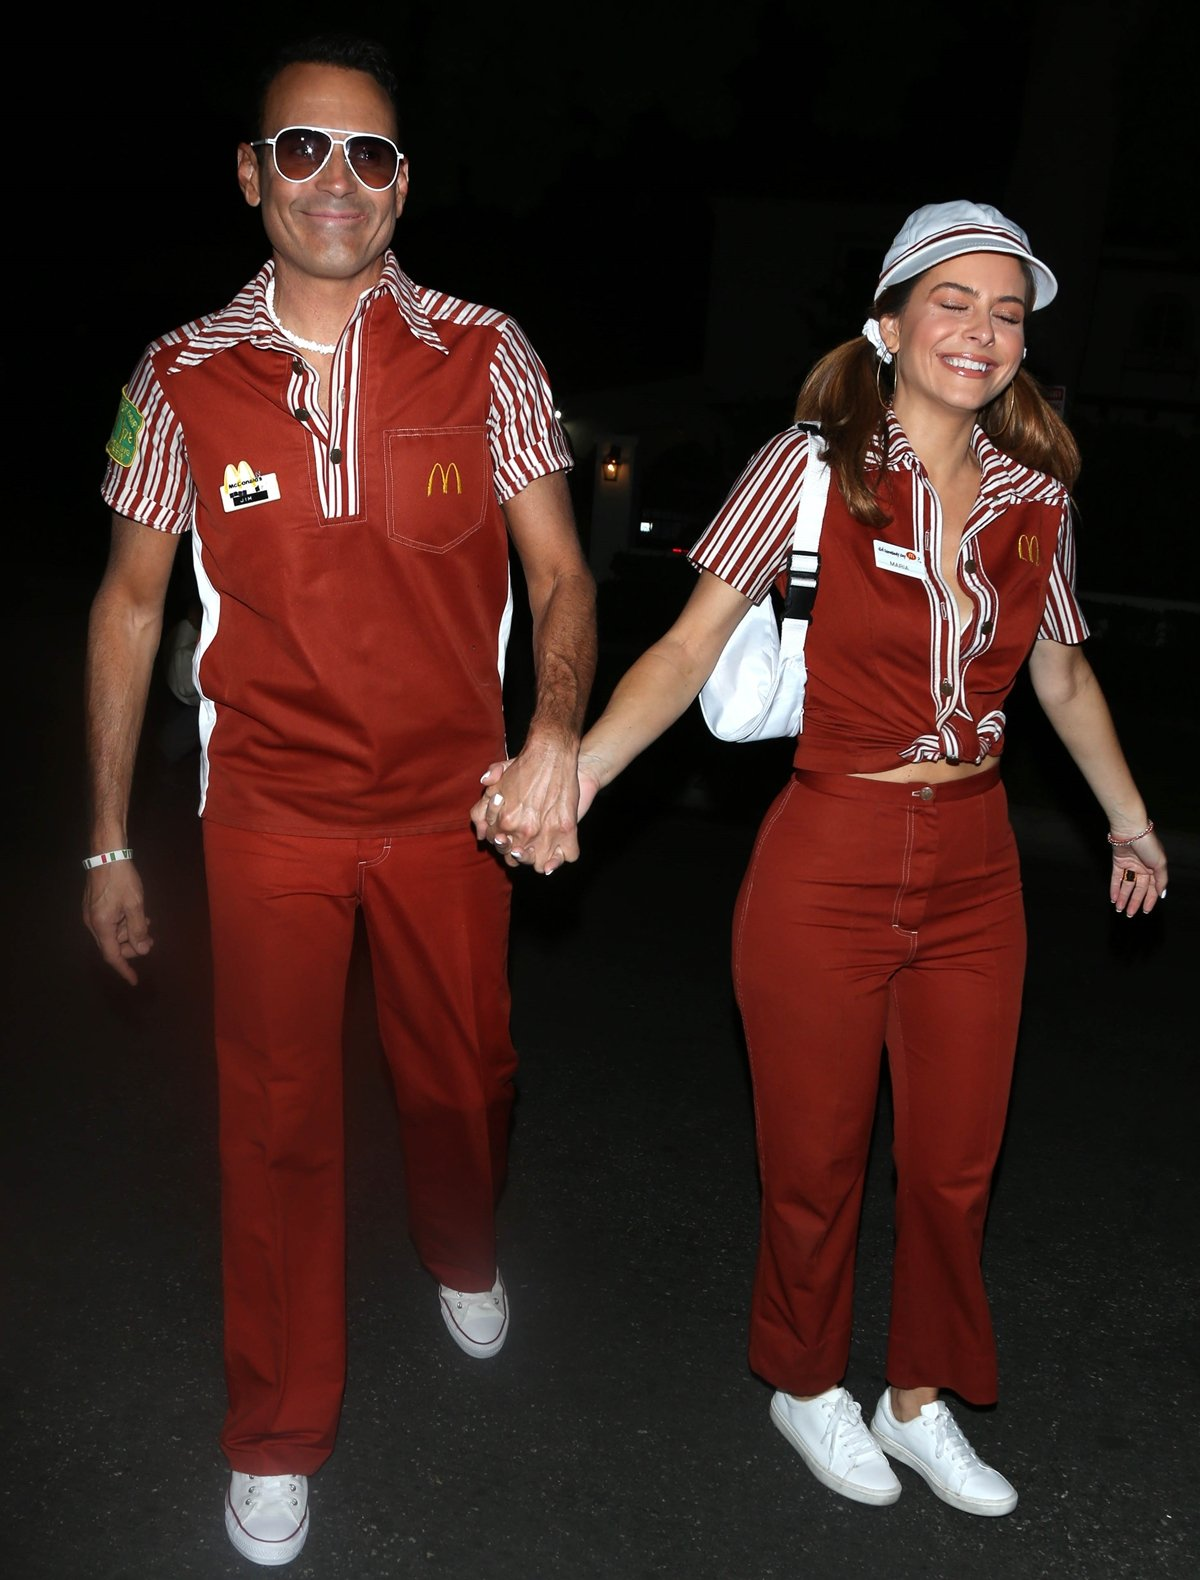 Maria Menounos and her husband Keven Undergaro at the Brought to You by Those Who Drink It Halloween party